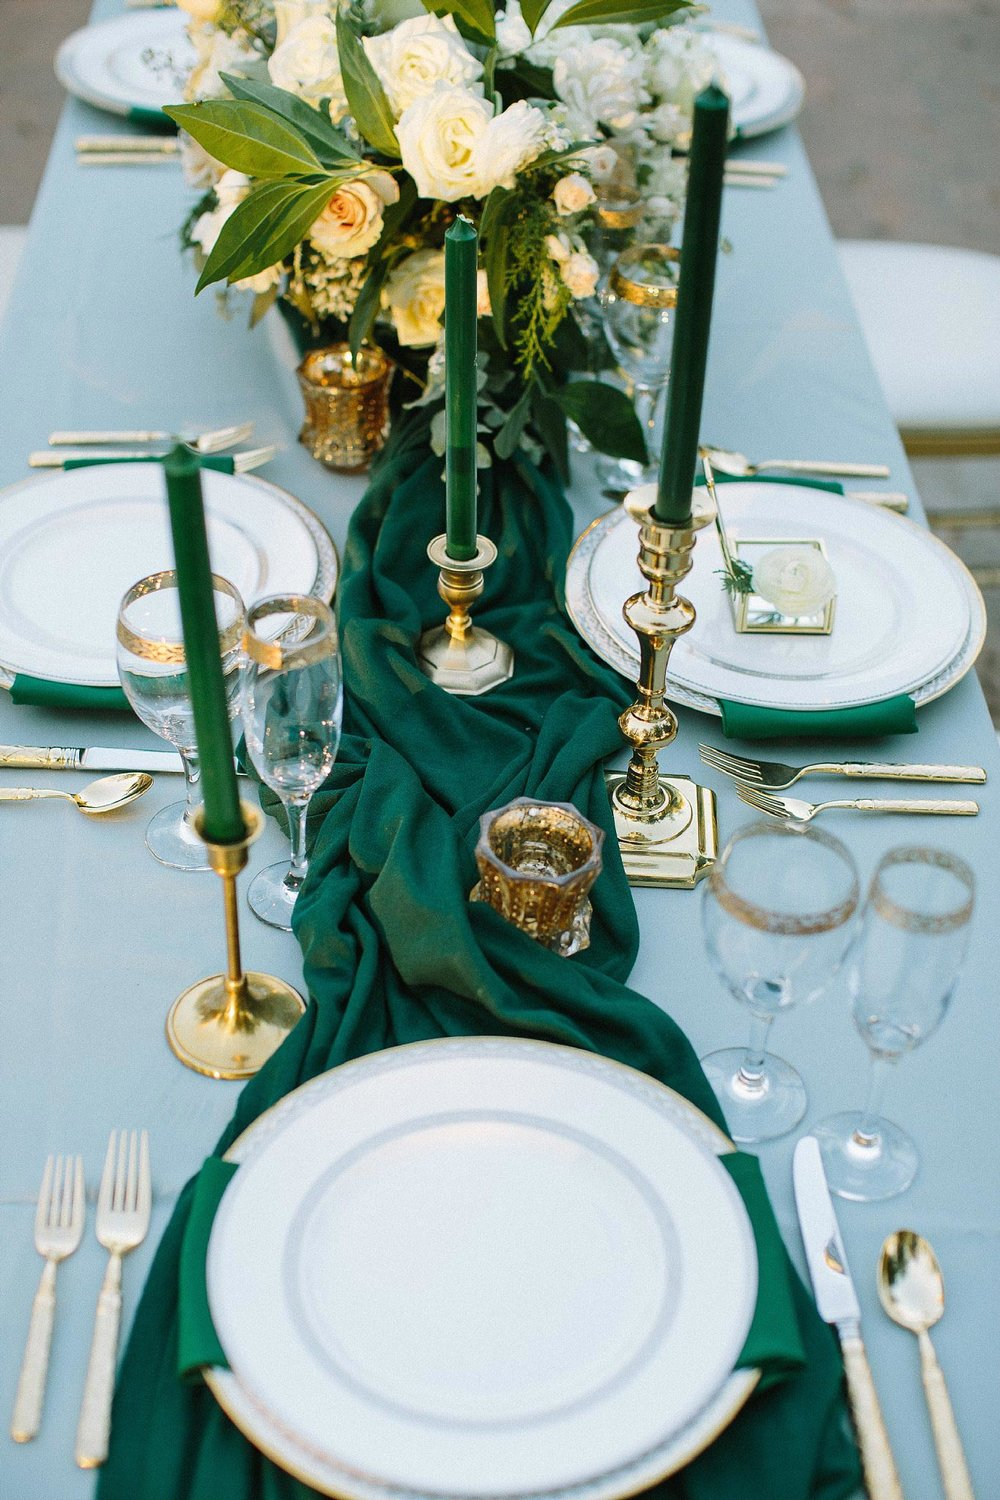 aristide mansfield wedding grey reception table with green runner and gold plates